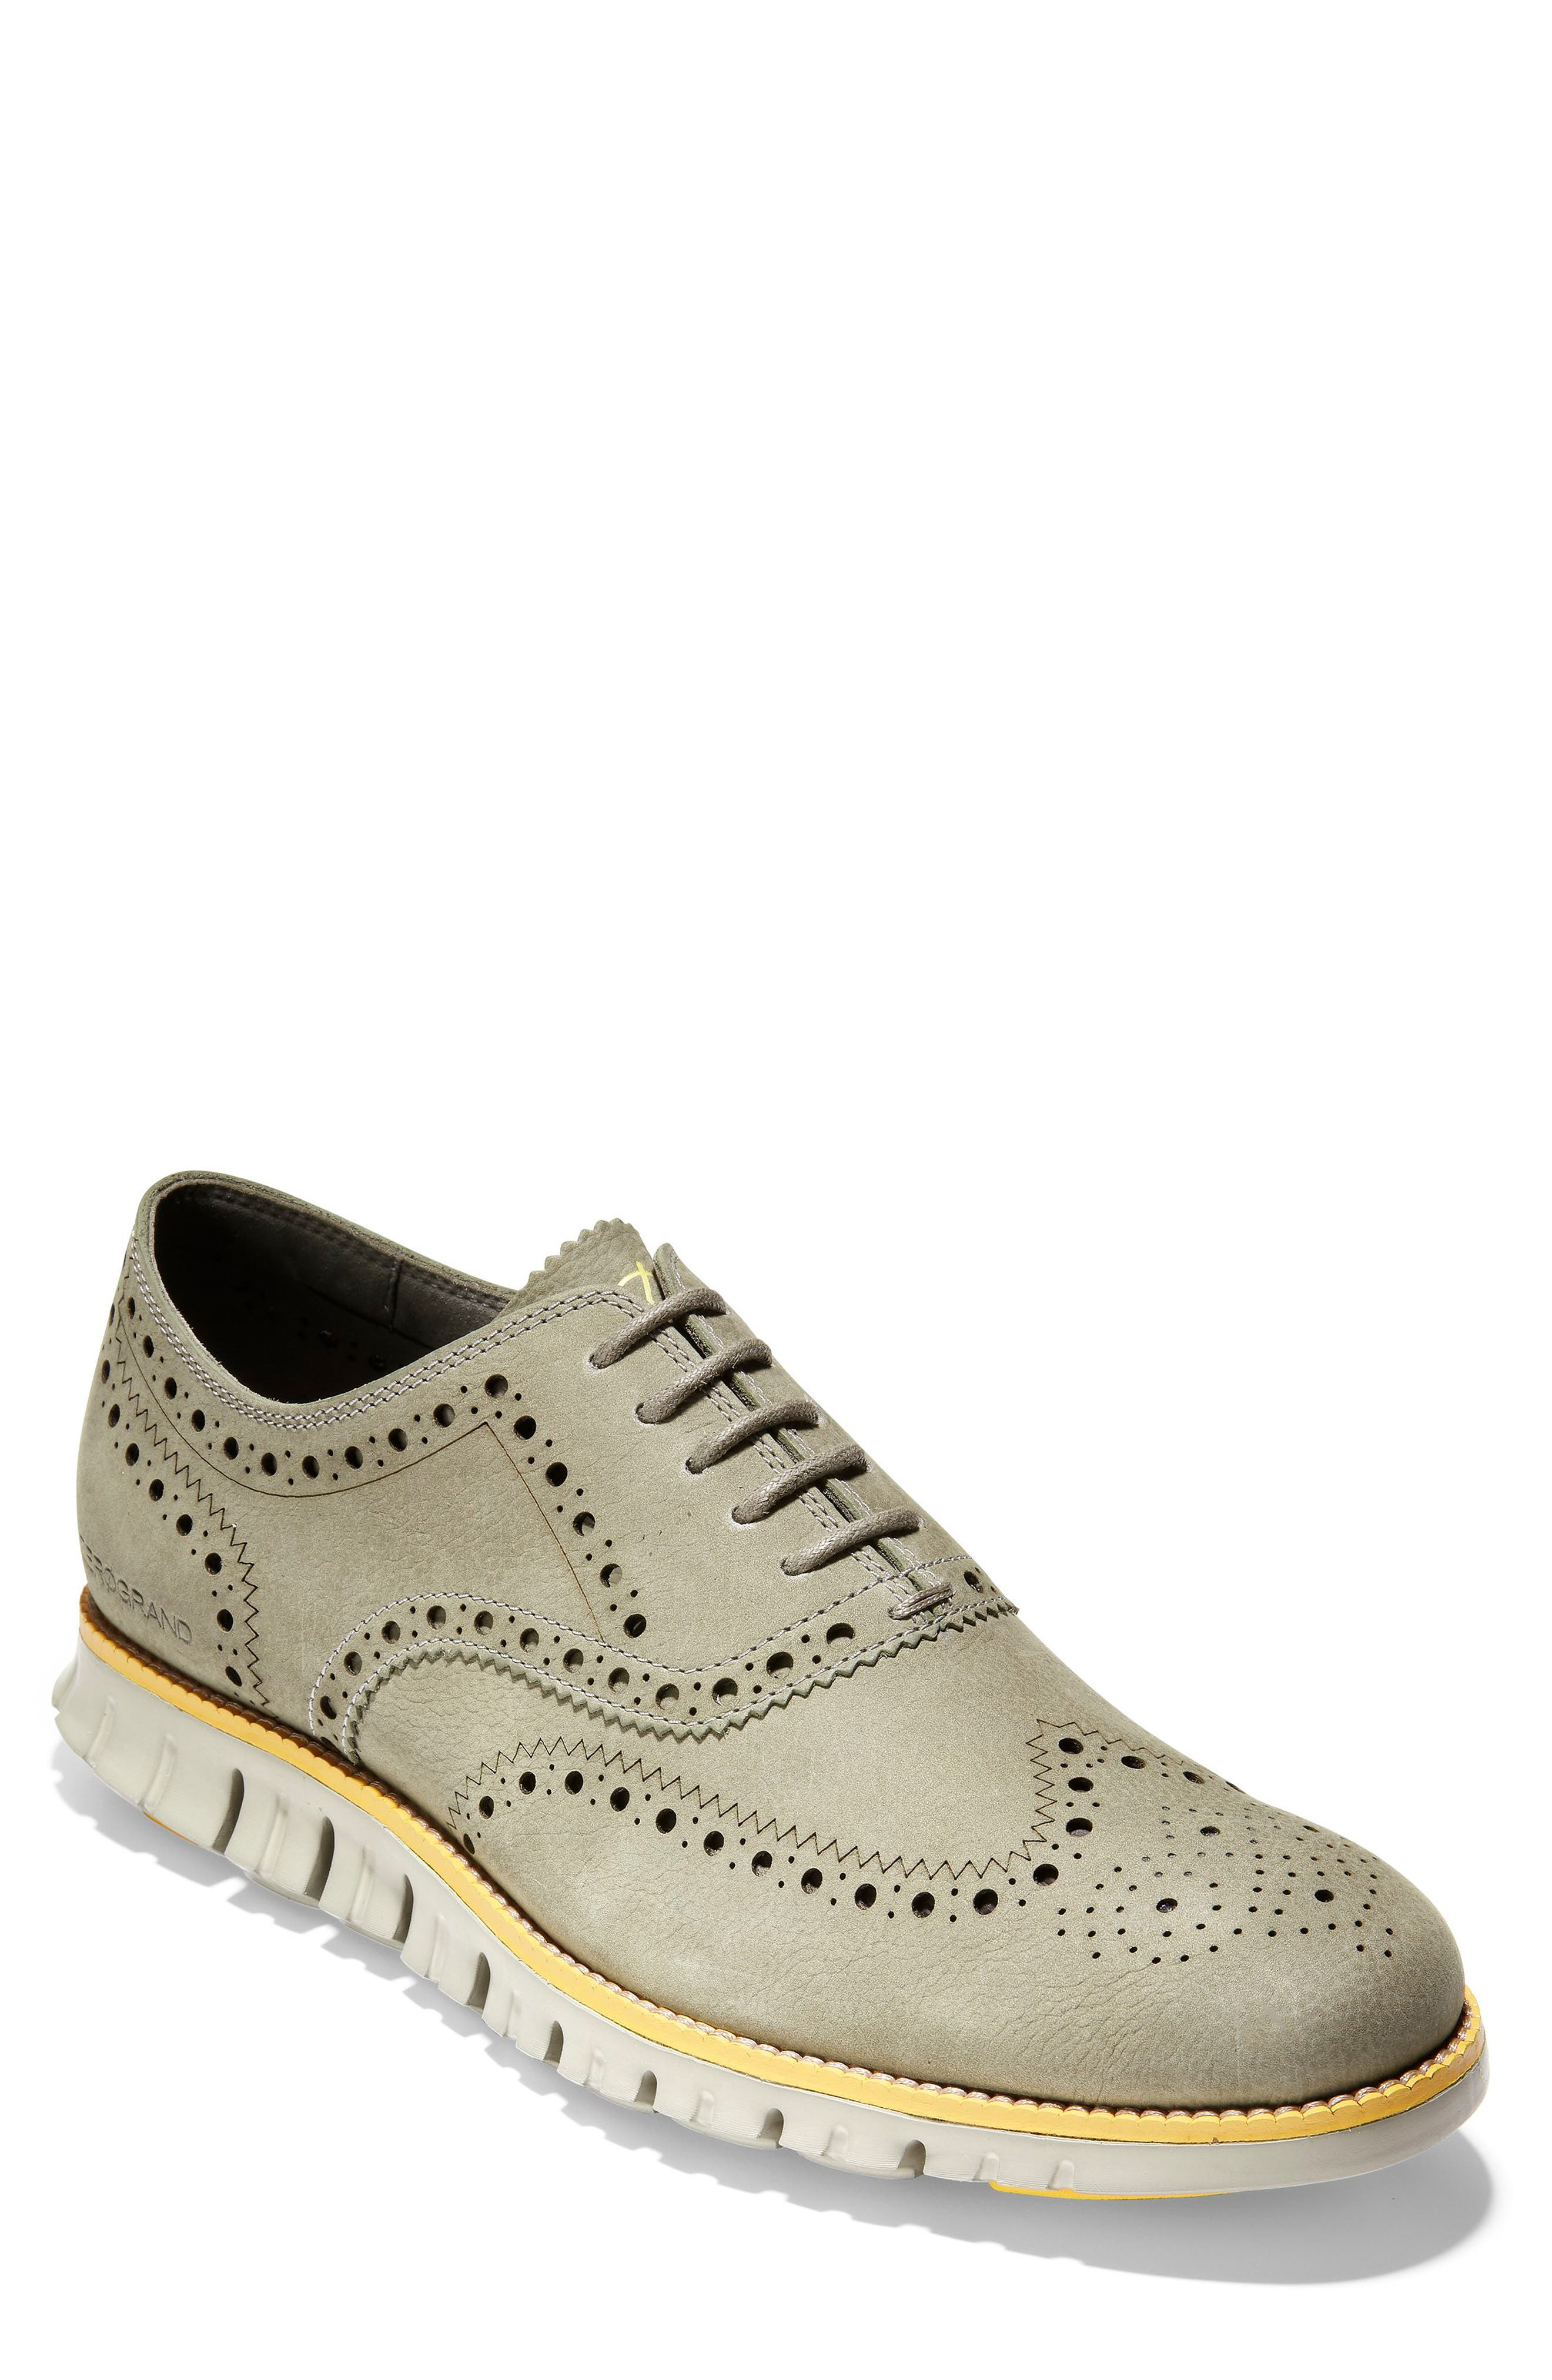 brand new c5aec 4b2d0 Cole Haan Shoes, Clothing   Accessories   Nordstrom